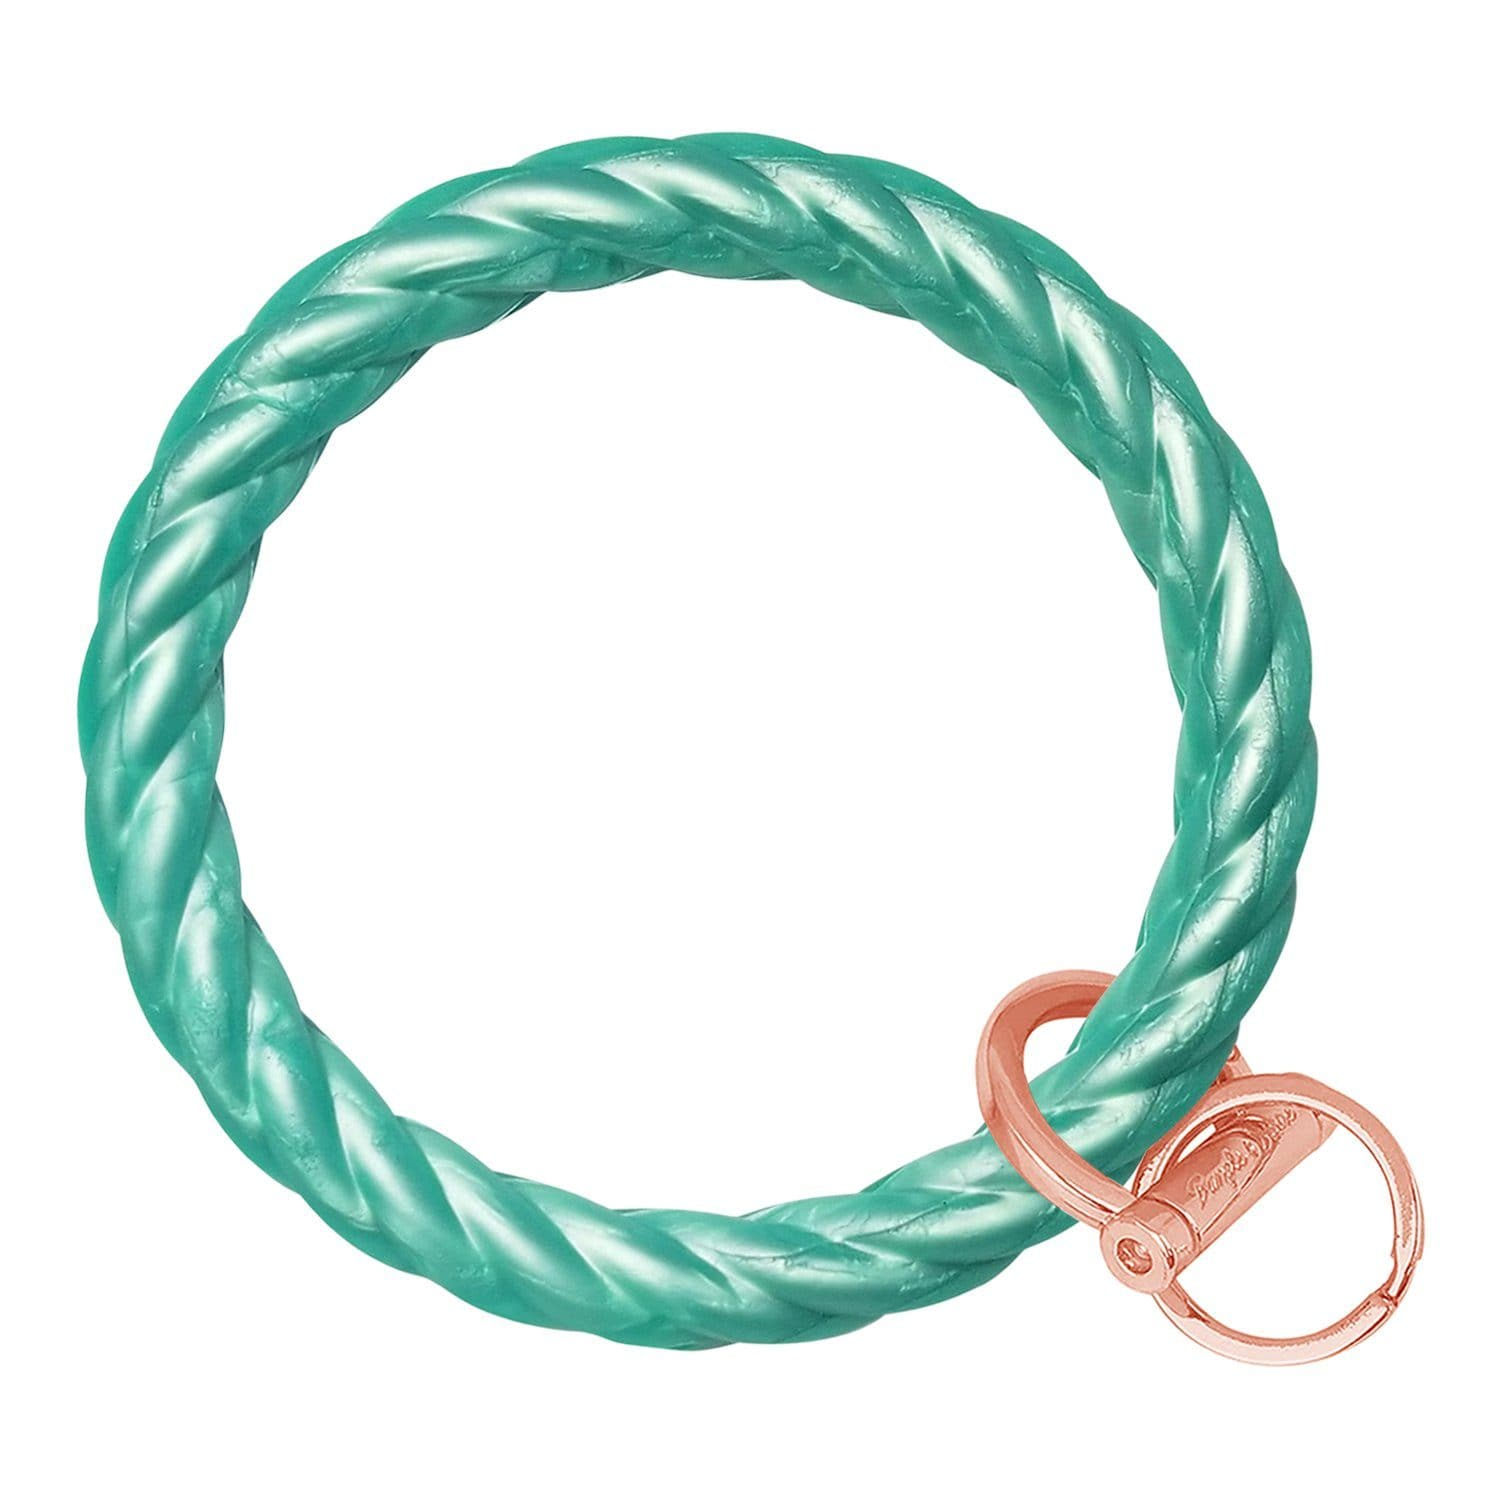 Twisted Bangle & Babe Bracelet Key Ring Twist - Marbled Sea Green Rose Gold